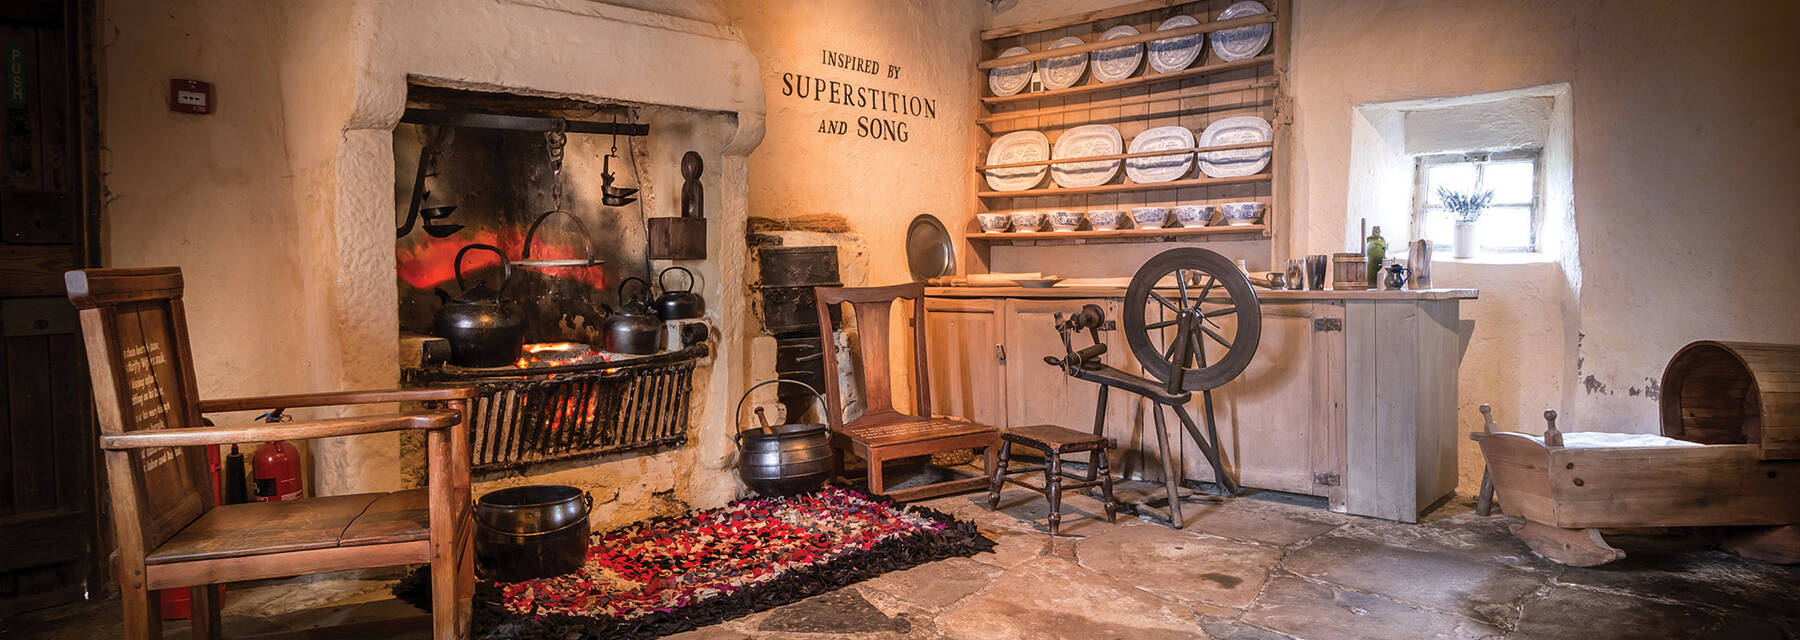 A view of the kitchen showing the hearth and spinning wheel in Burns Cottage.